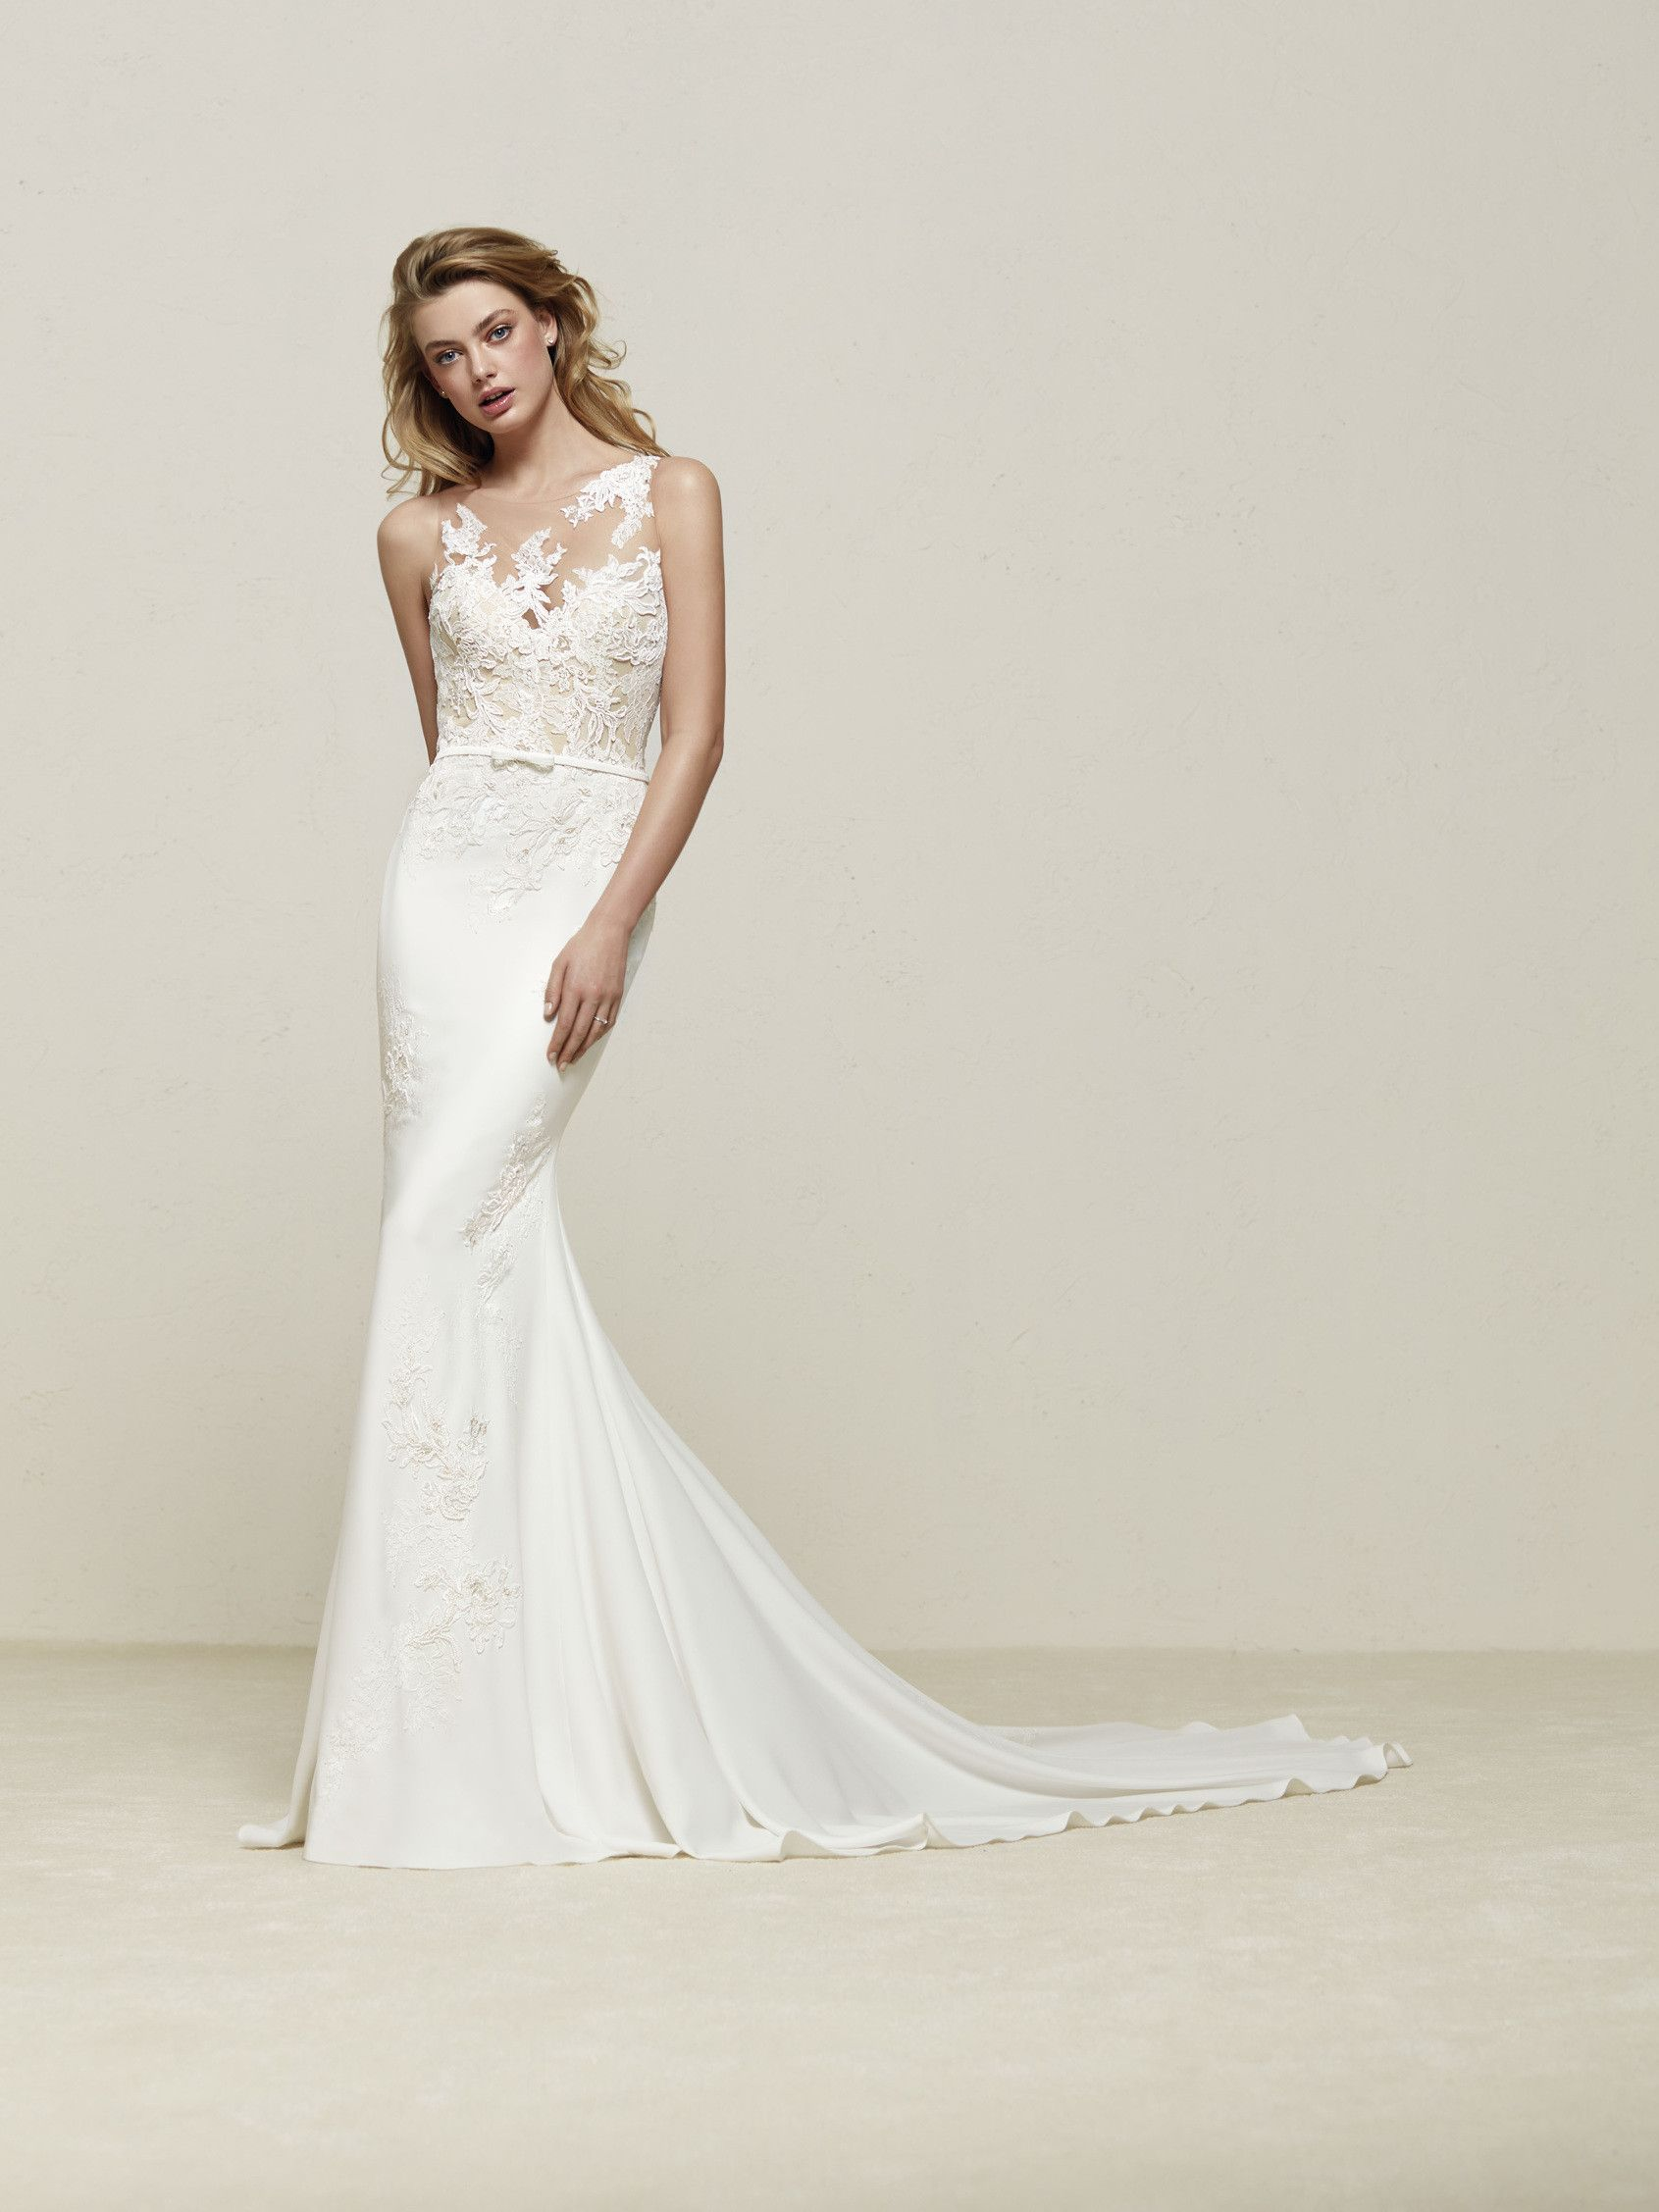 Drenoa Beautiful wedding dress with lace that streamlines the